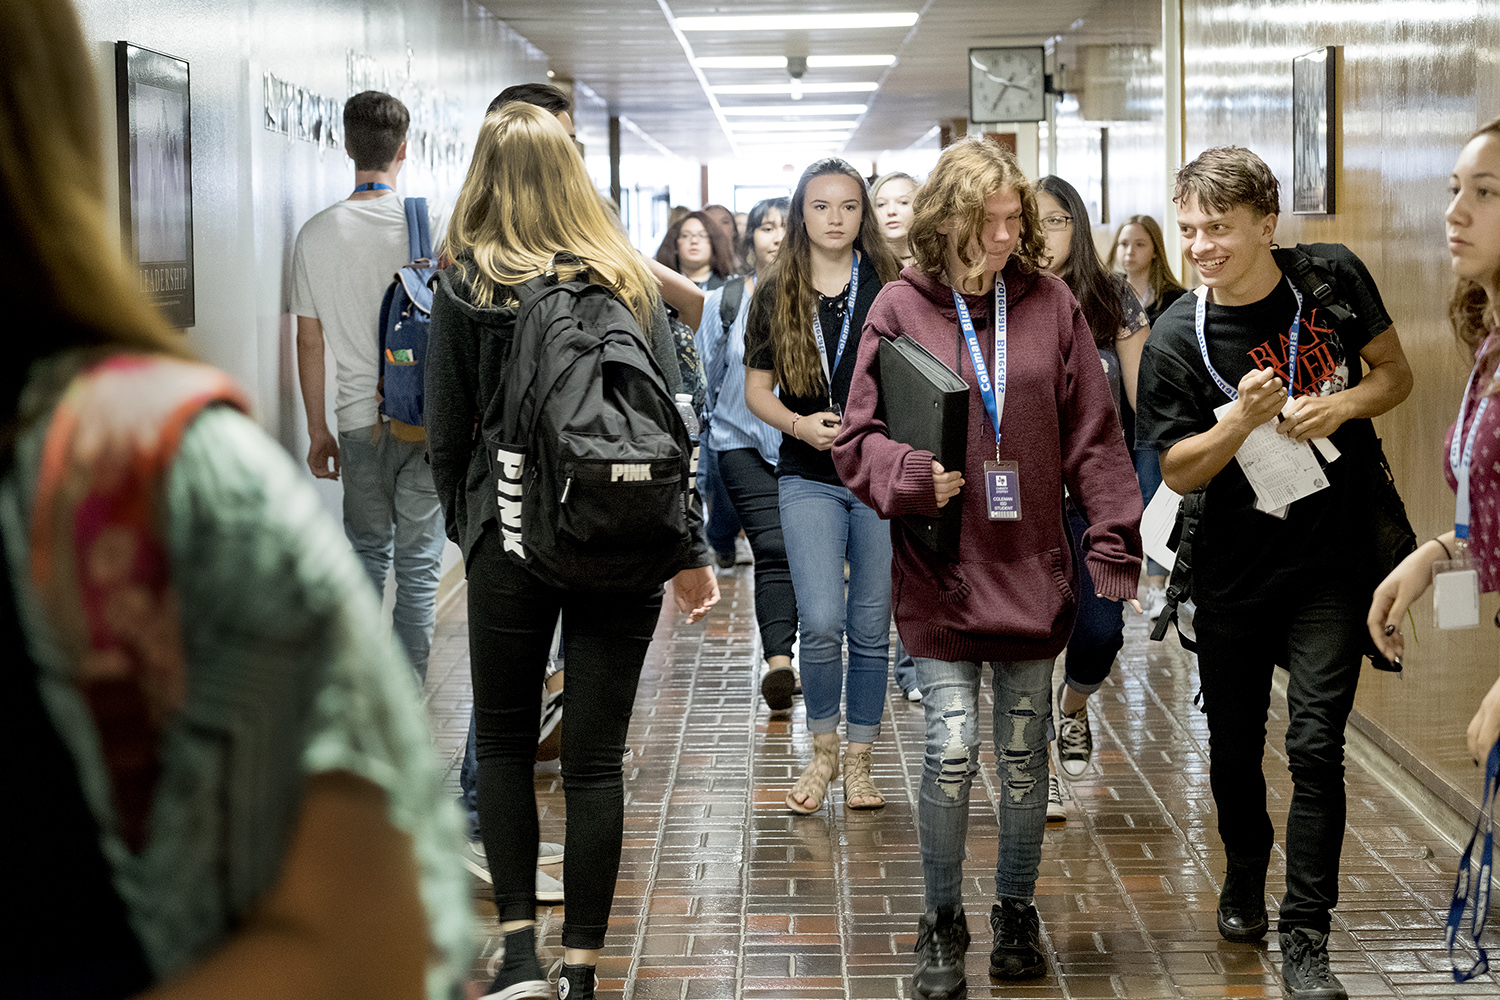 Students fill the hallway as school lets out on the first day of the school year at Coleman High School on August 24, 2017.